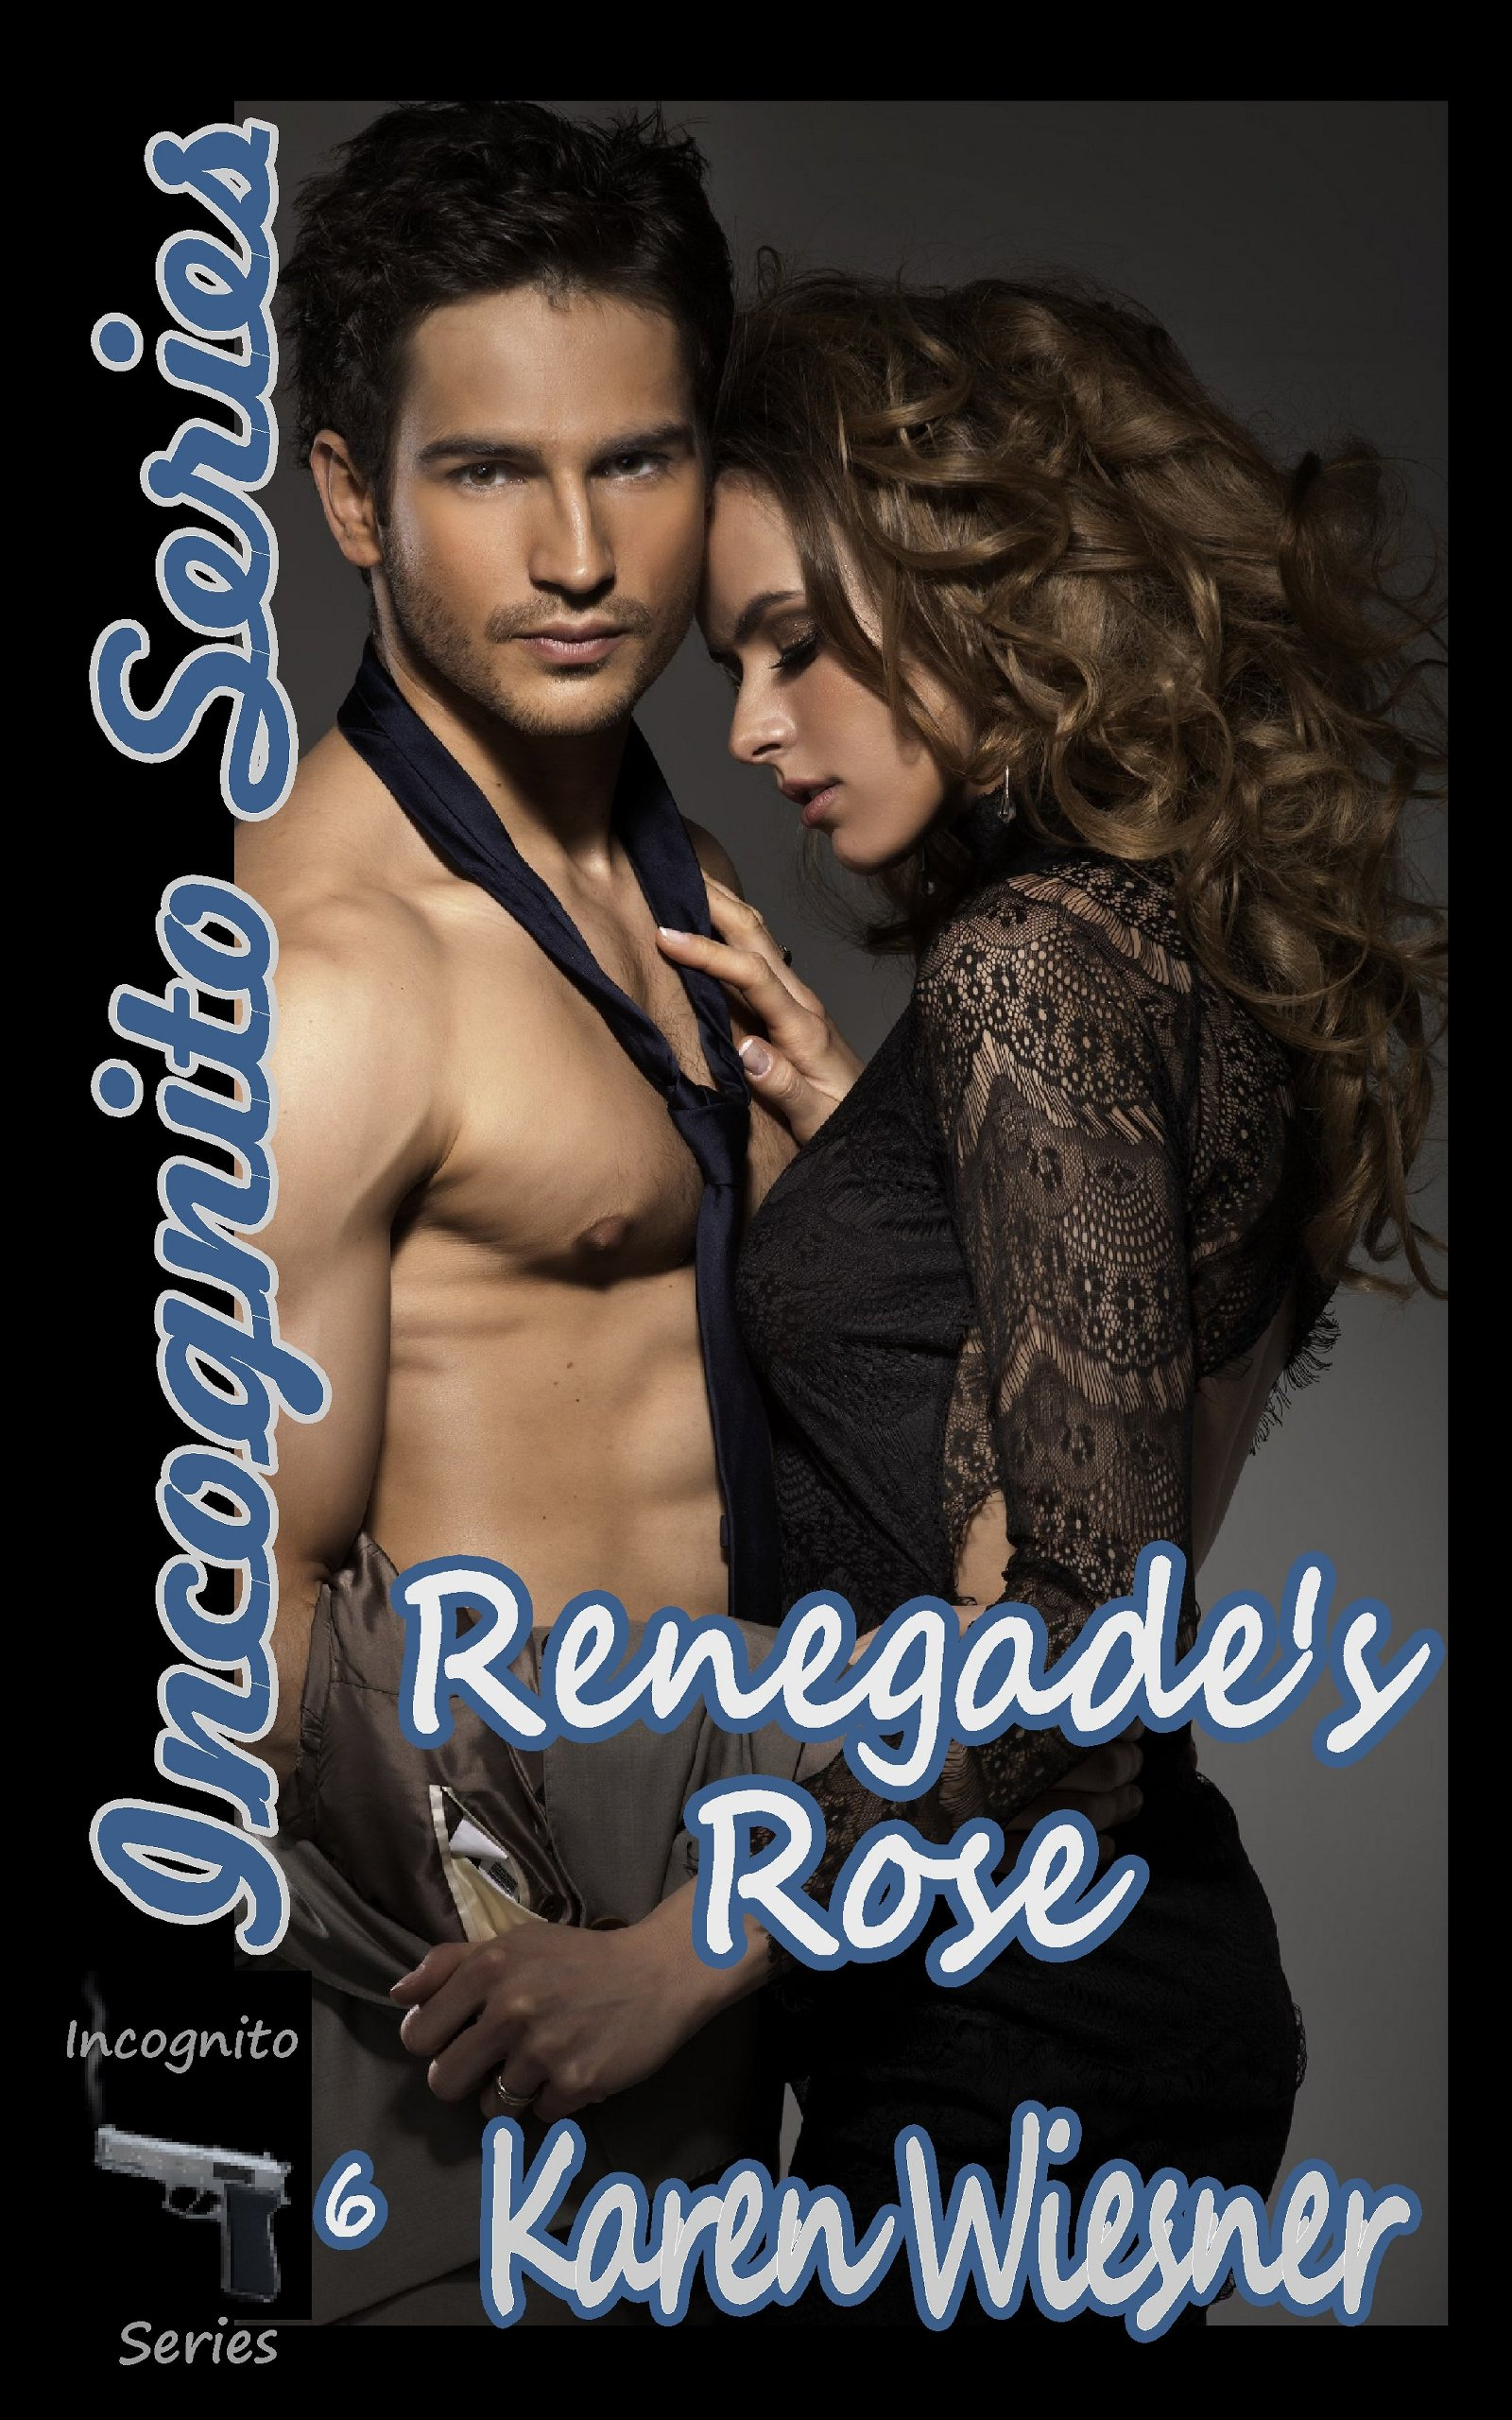 Karen Wiesner - Renegade's Rose, Book 6 of the Incognito Series